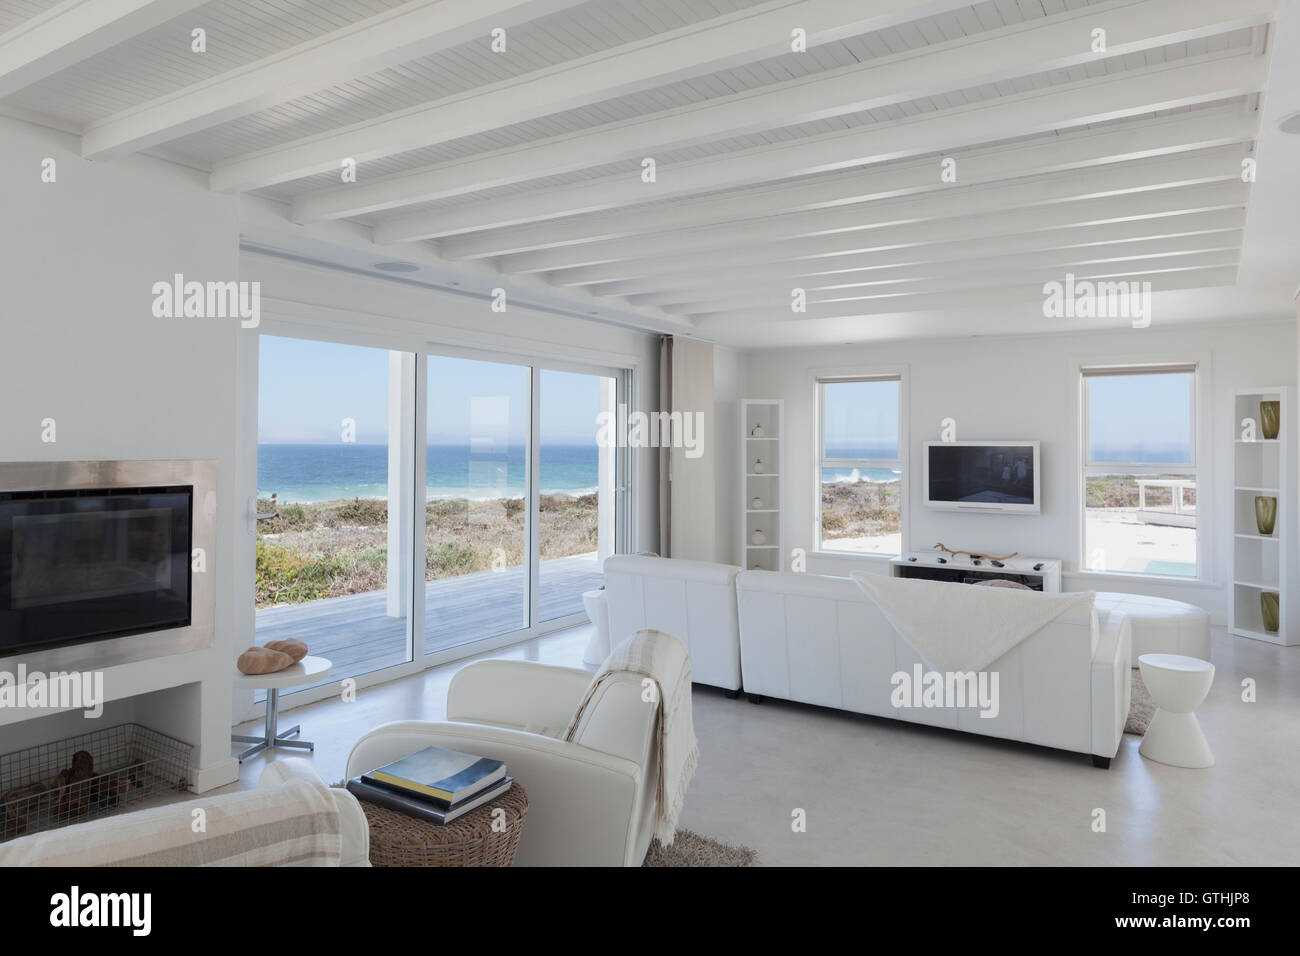 Beach house living room with wood beam ceilings Stock